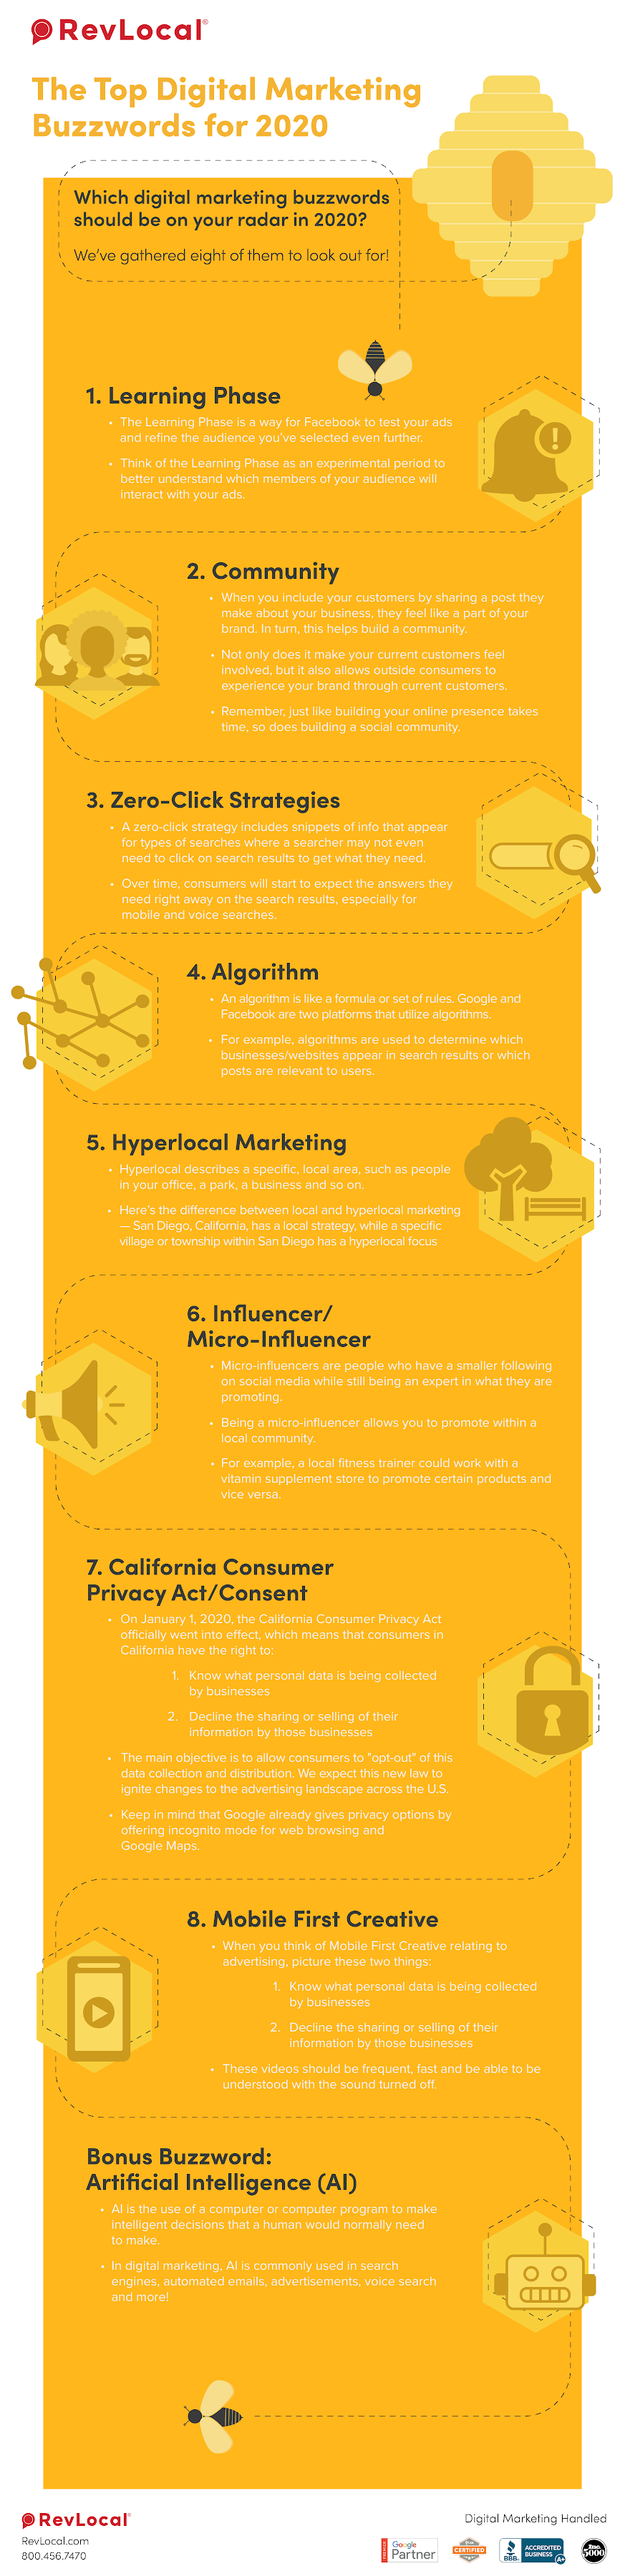 The Top Digital Marketing Buzzwords for 2020 #infographic